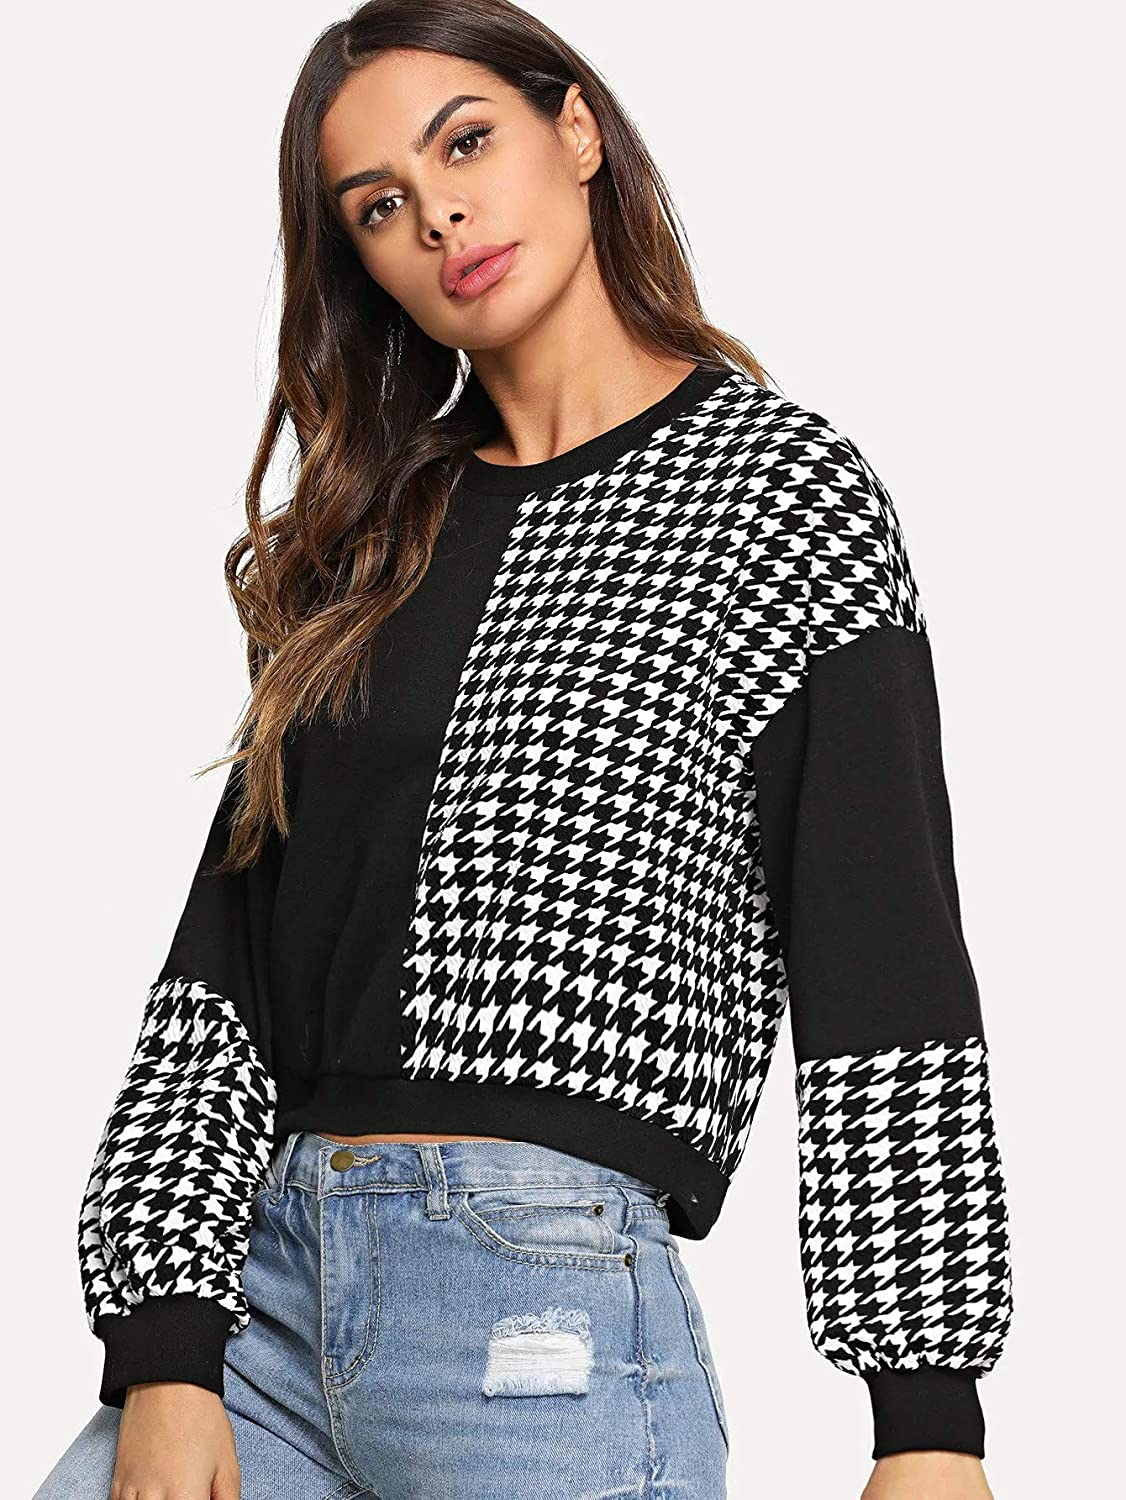 Romwe Womens Casual Cut and Sew Color Block Long Sleeve Round Neck Blouse Sweatshirt